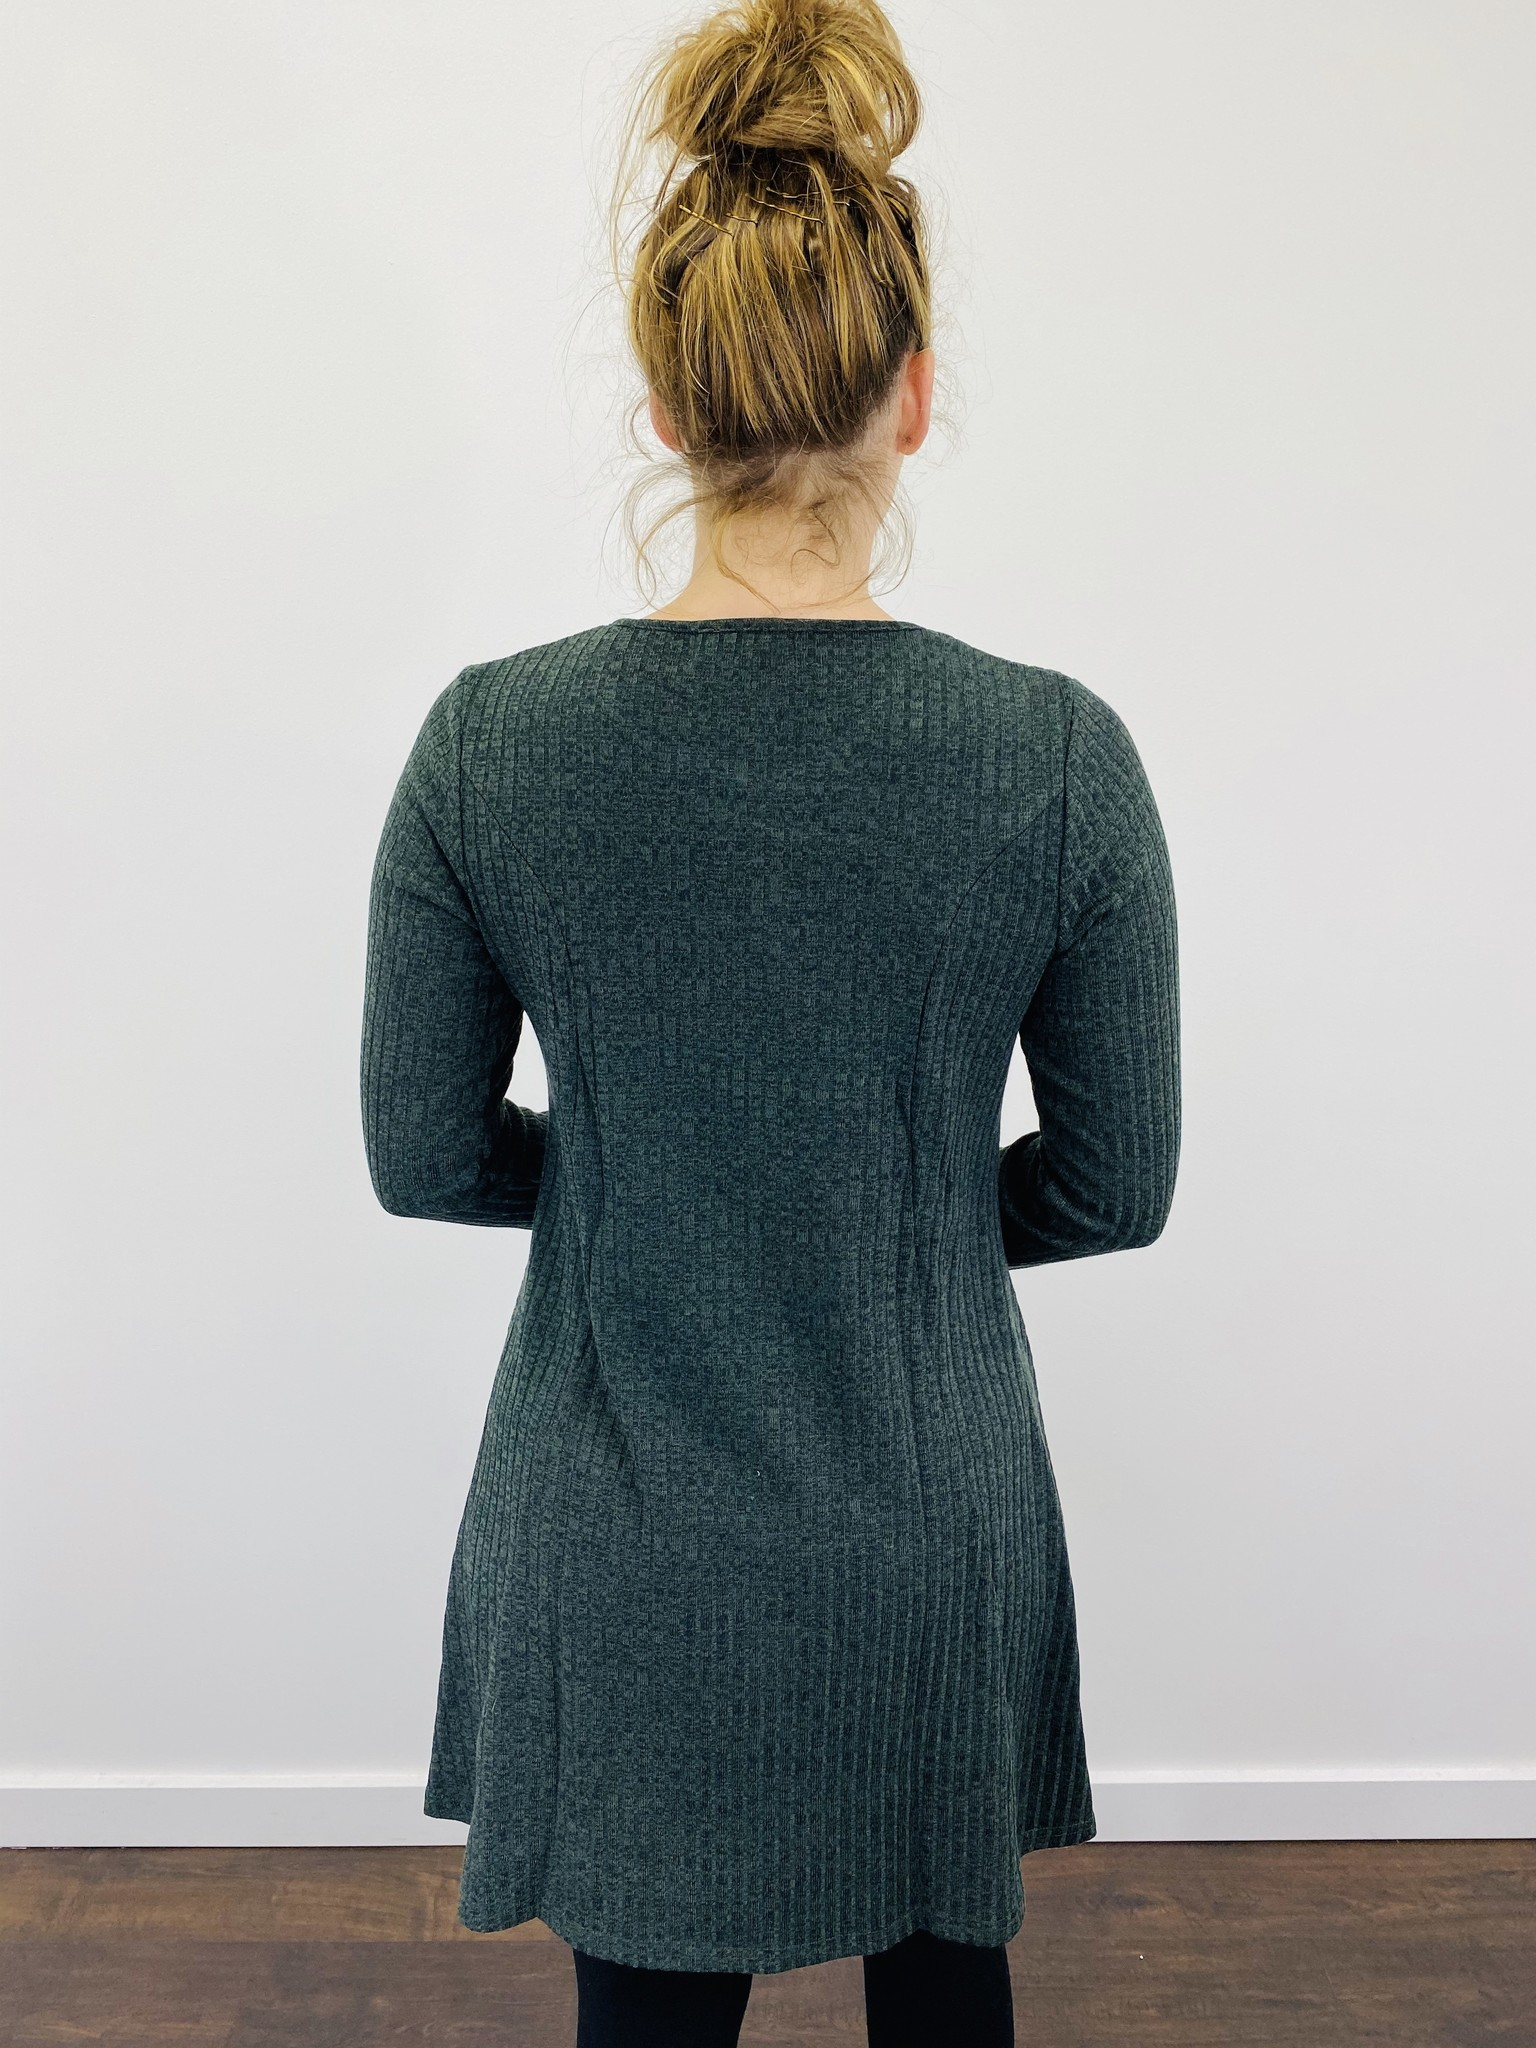 Papillon Ribbed A-Line Dress in Green